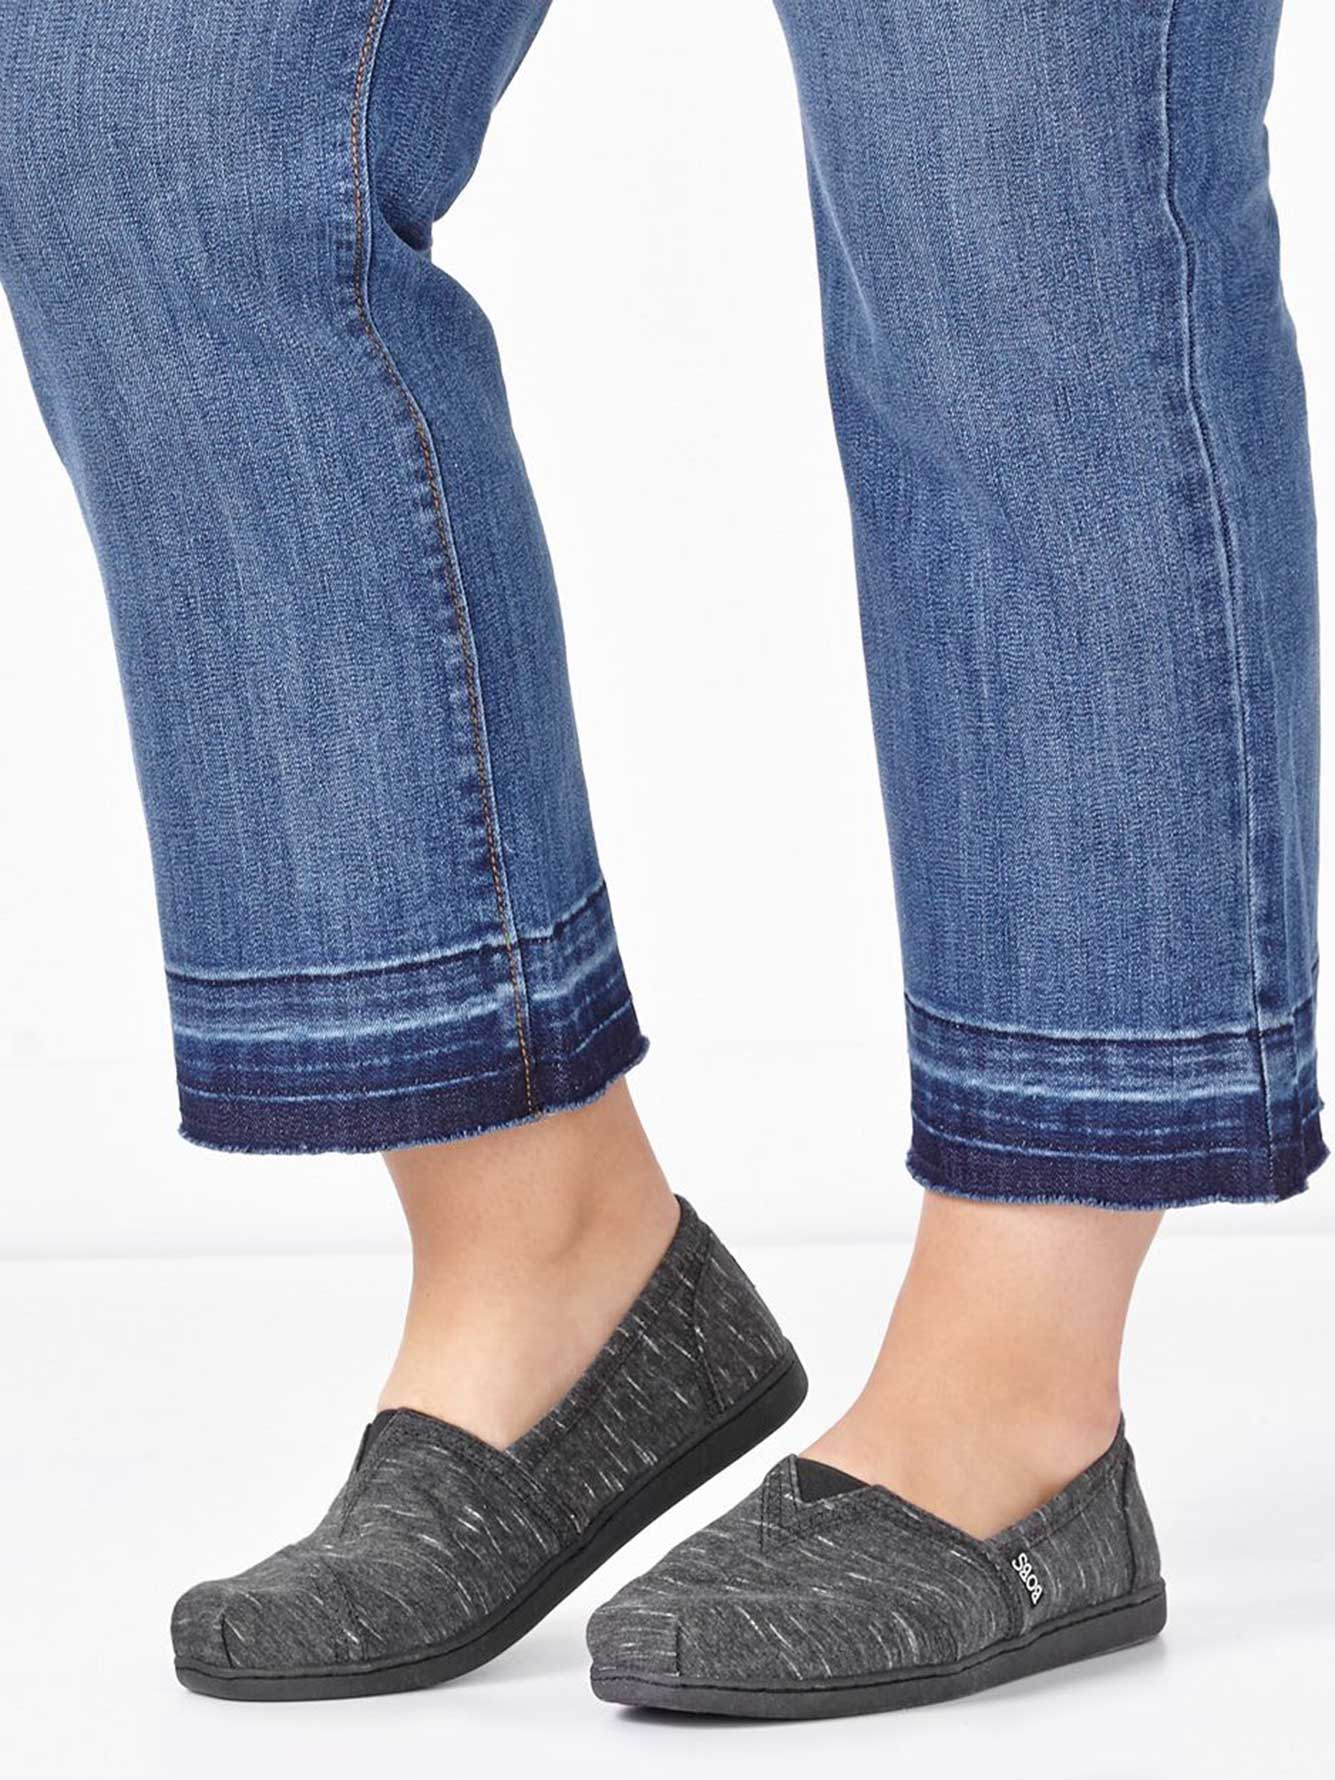 bobs from skechers wide width slip on shoes penningtons